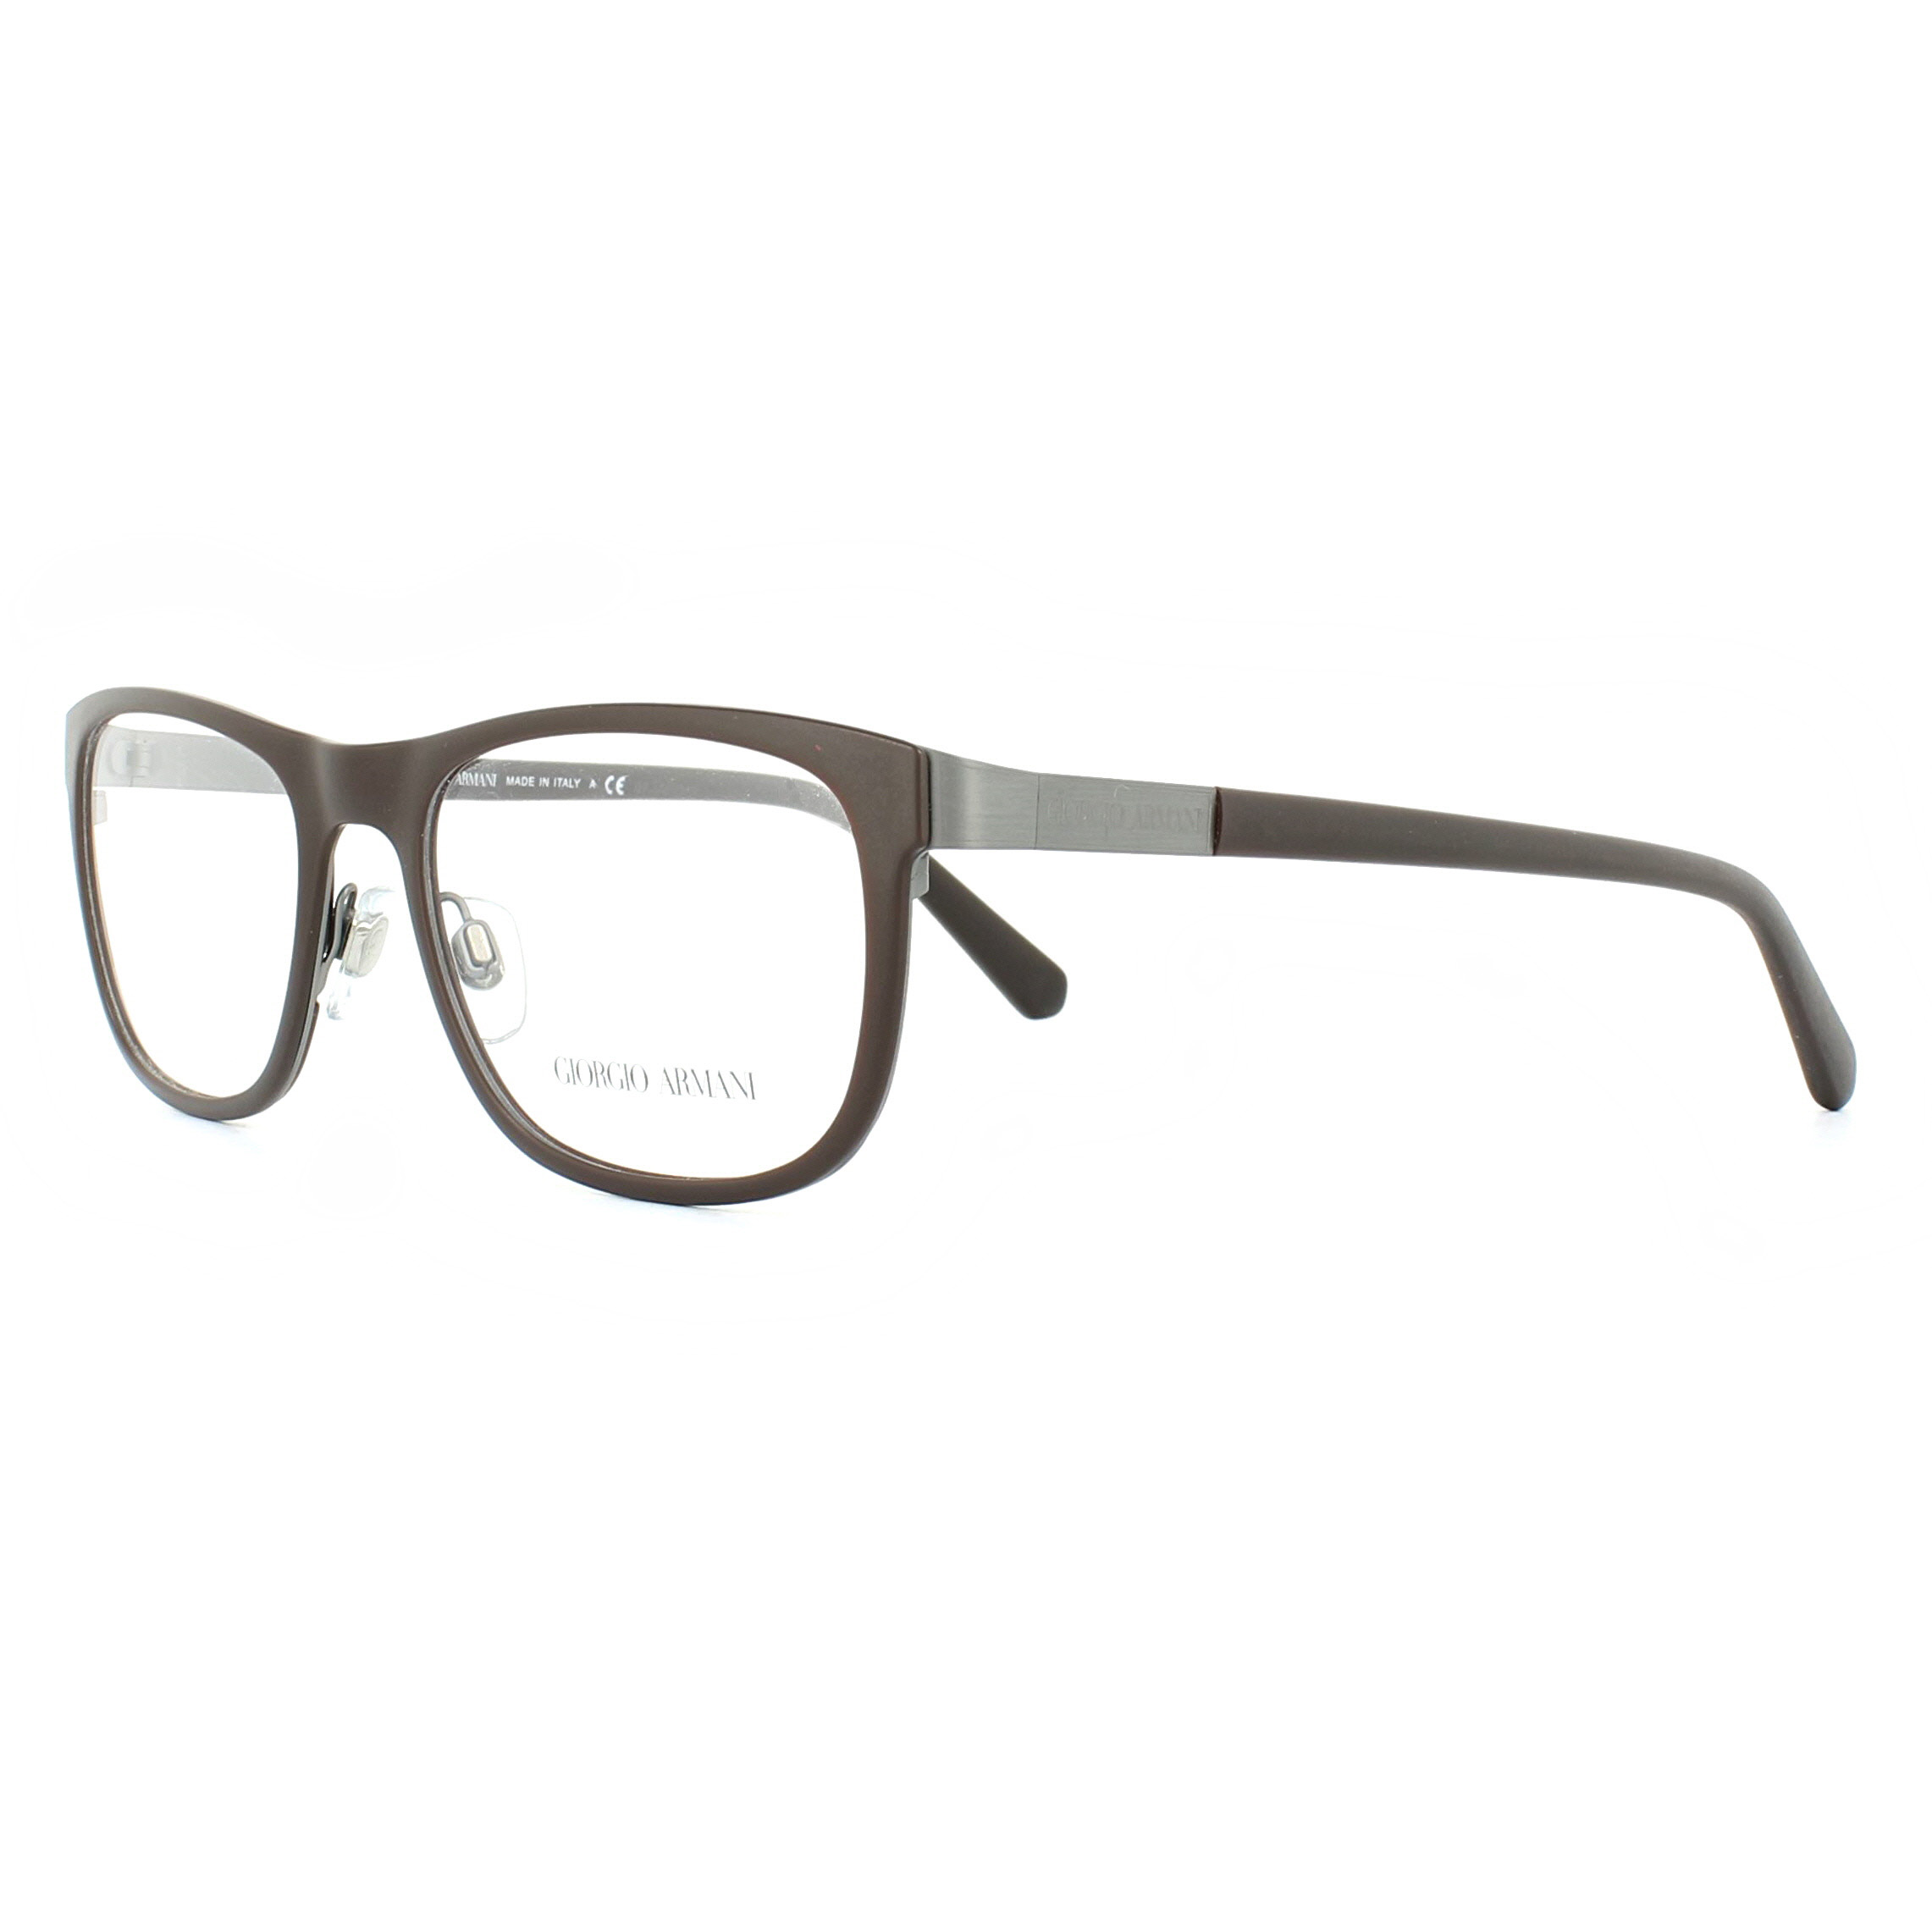 5ae5bcc9ec188 Sentinel Giorgio Armani Glasses Frames AR5012 3032 Matte Brown and Gunmetal  53mm Mens